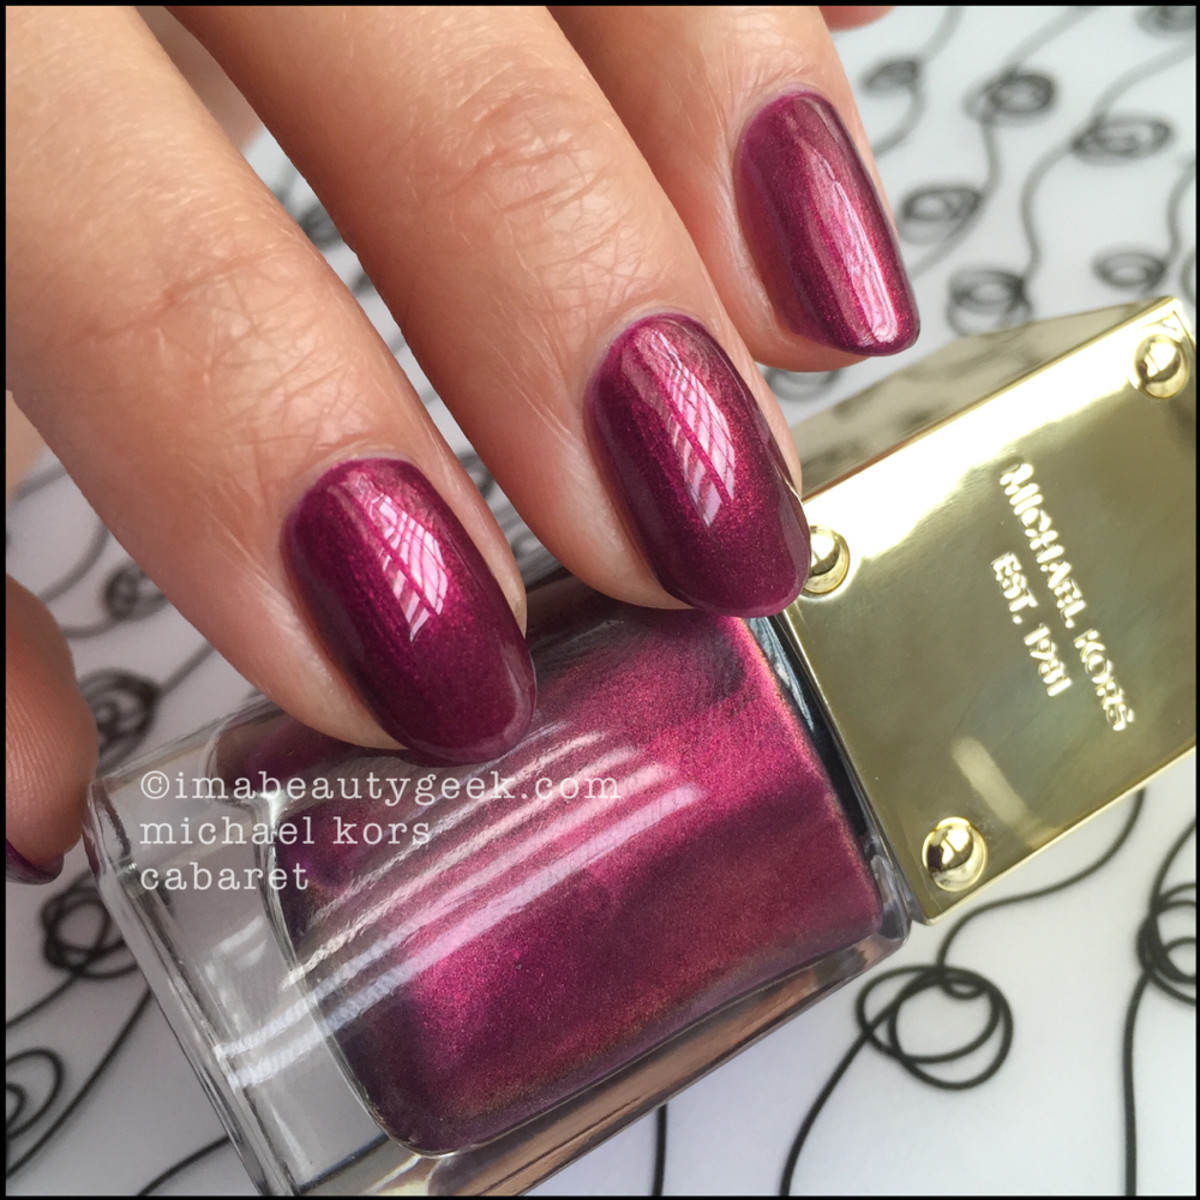 Michael Kors Cabaret Nail Polish Swatch Beautygeeks